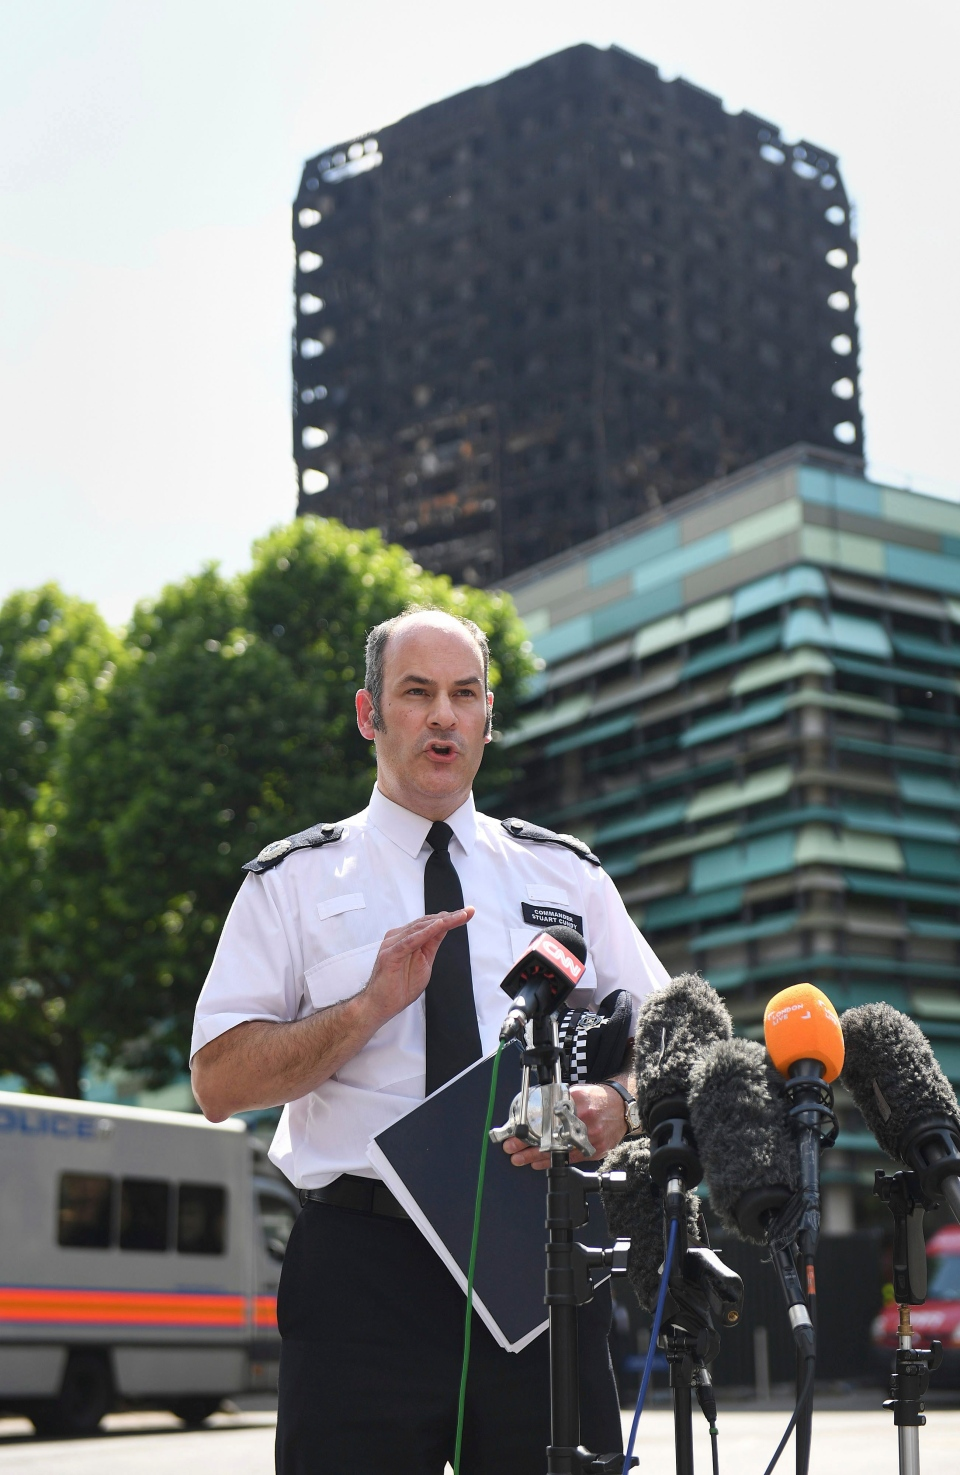 Metropolitan Police Commander Stuart Cundy speaks to the media near Grenfell Tower after a fire engulfed the 24-storey building, in London, Saturday June 17, 2017. (Victoria Jones/PA via AP)